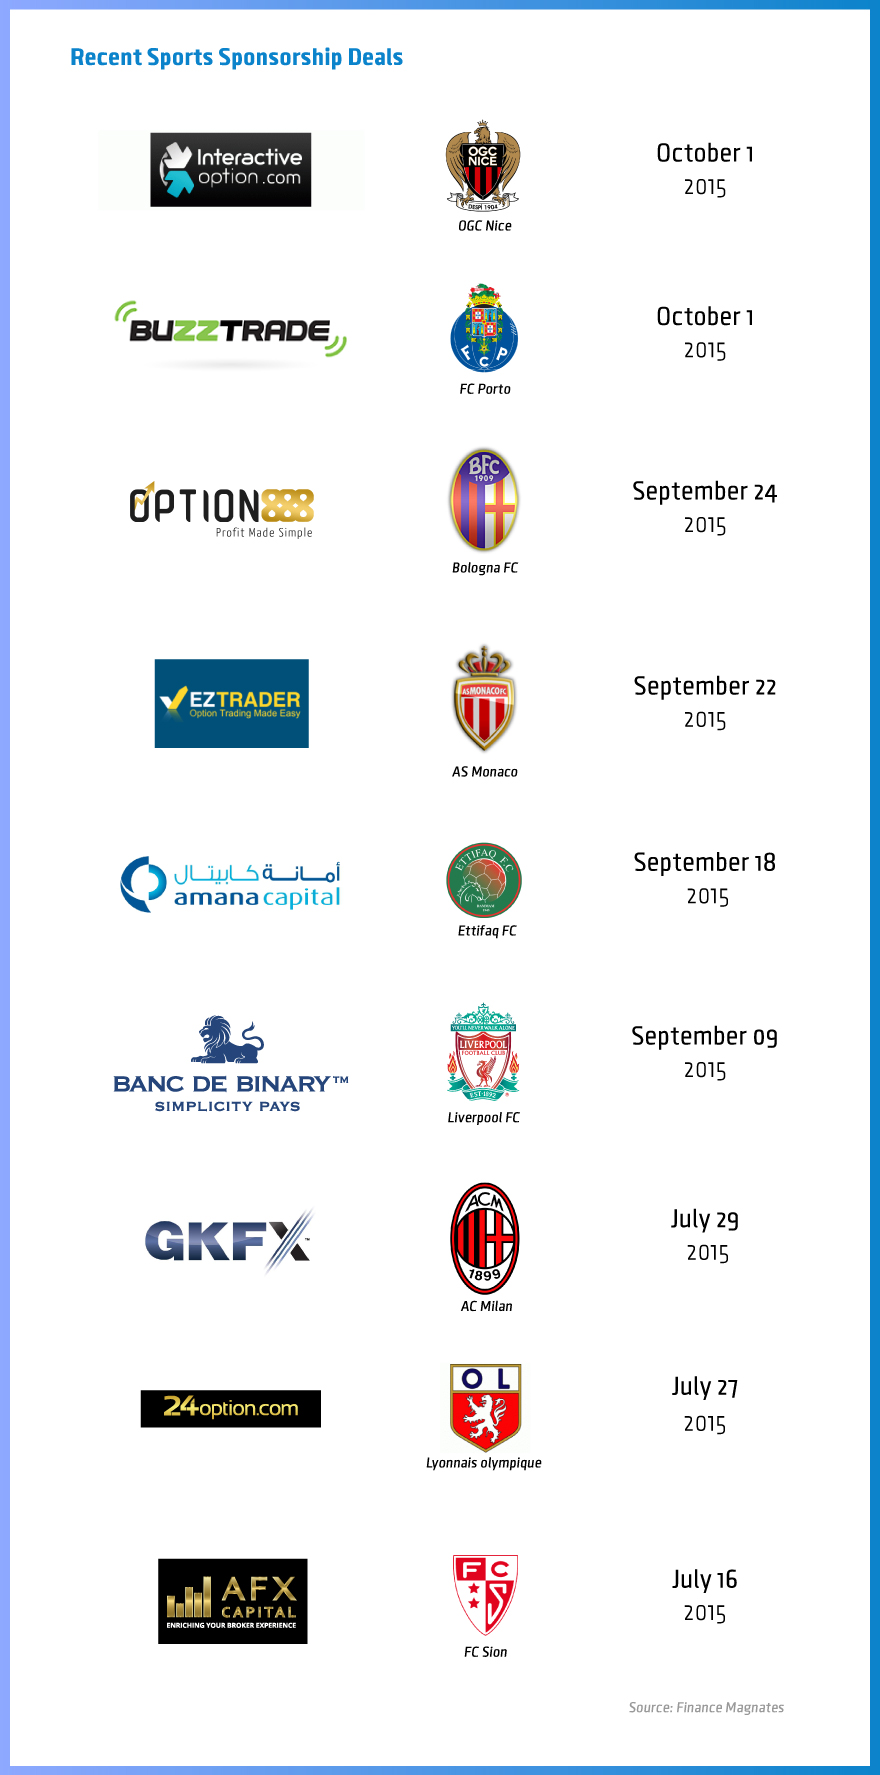 Recent-Sports-Sponsorship-Deals (2)